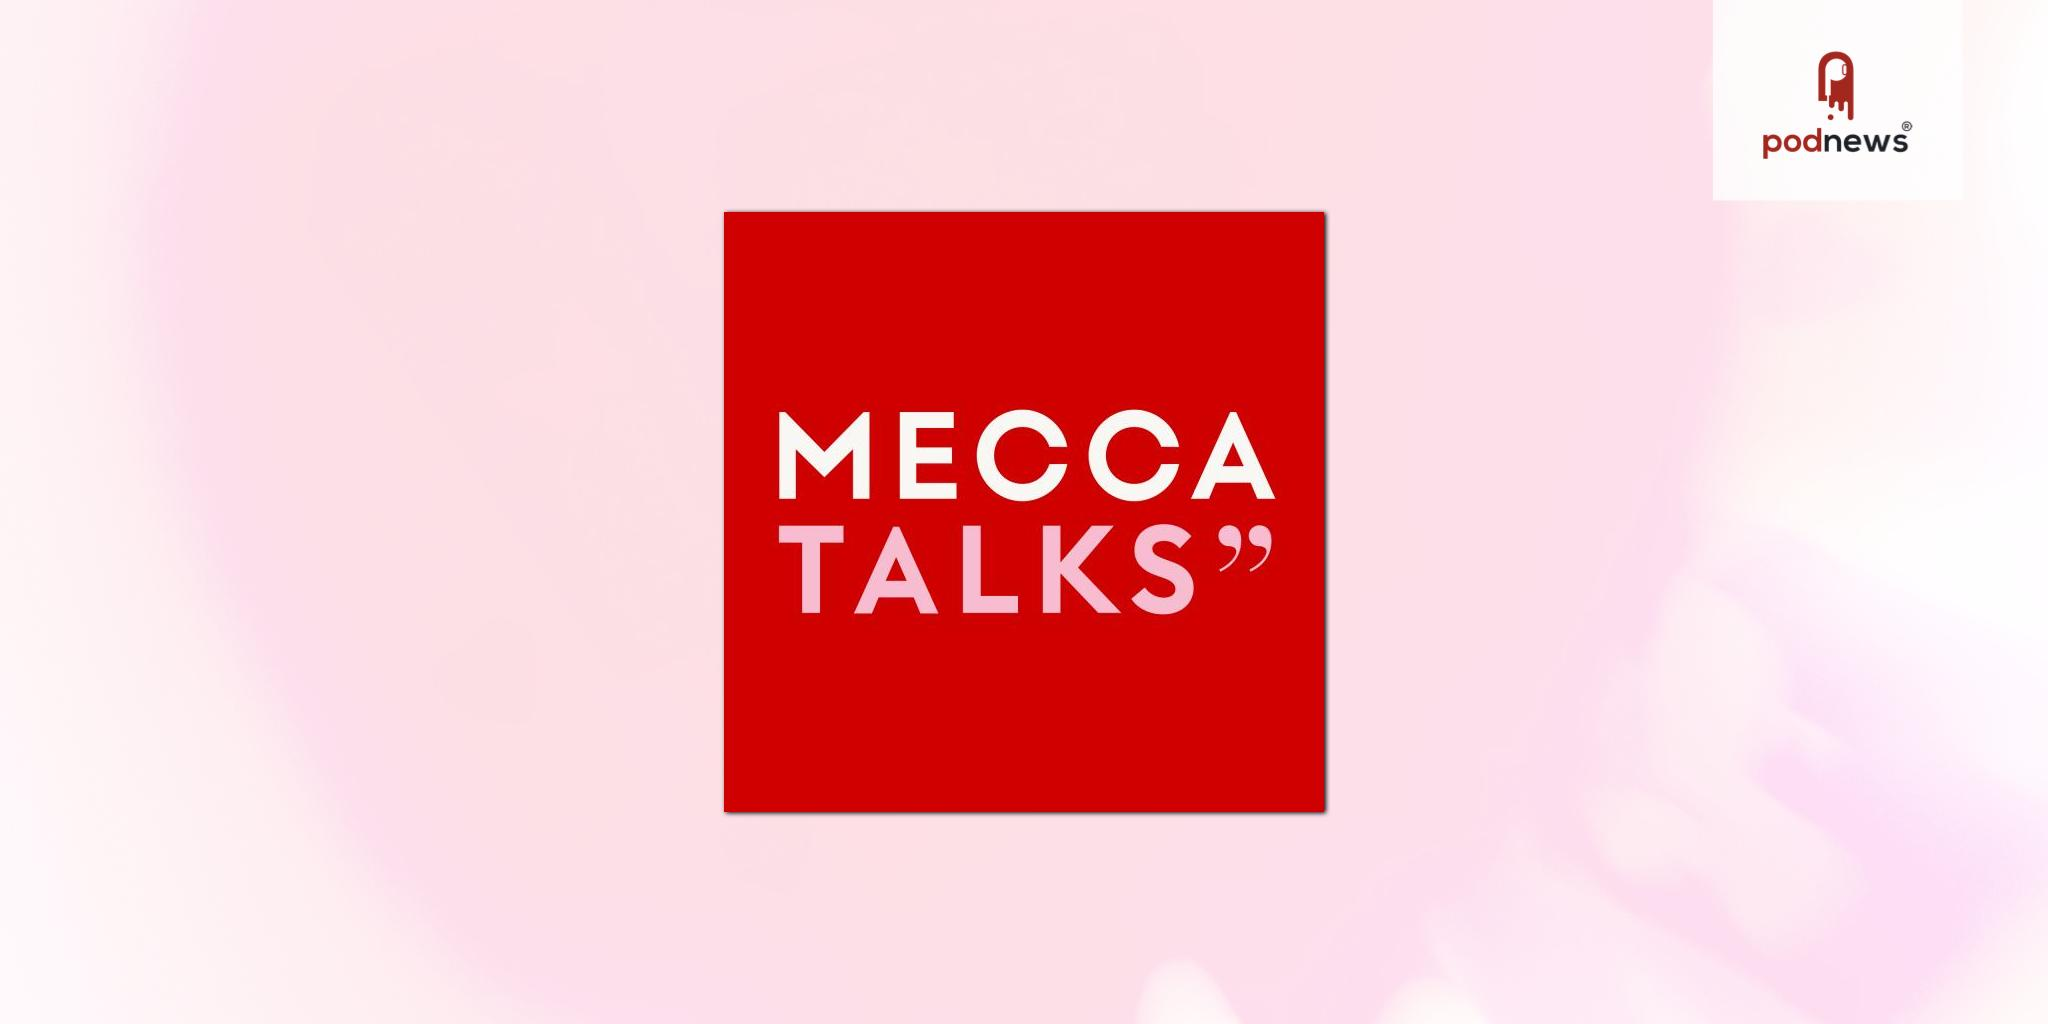 MECCA Talks: the new podcast that provides an all access pass to beauty, business and lifestyle experts